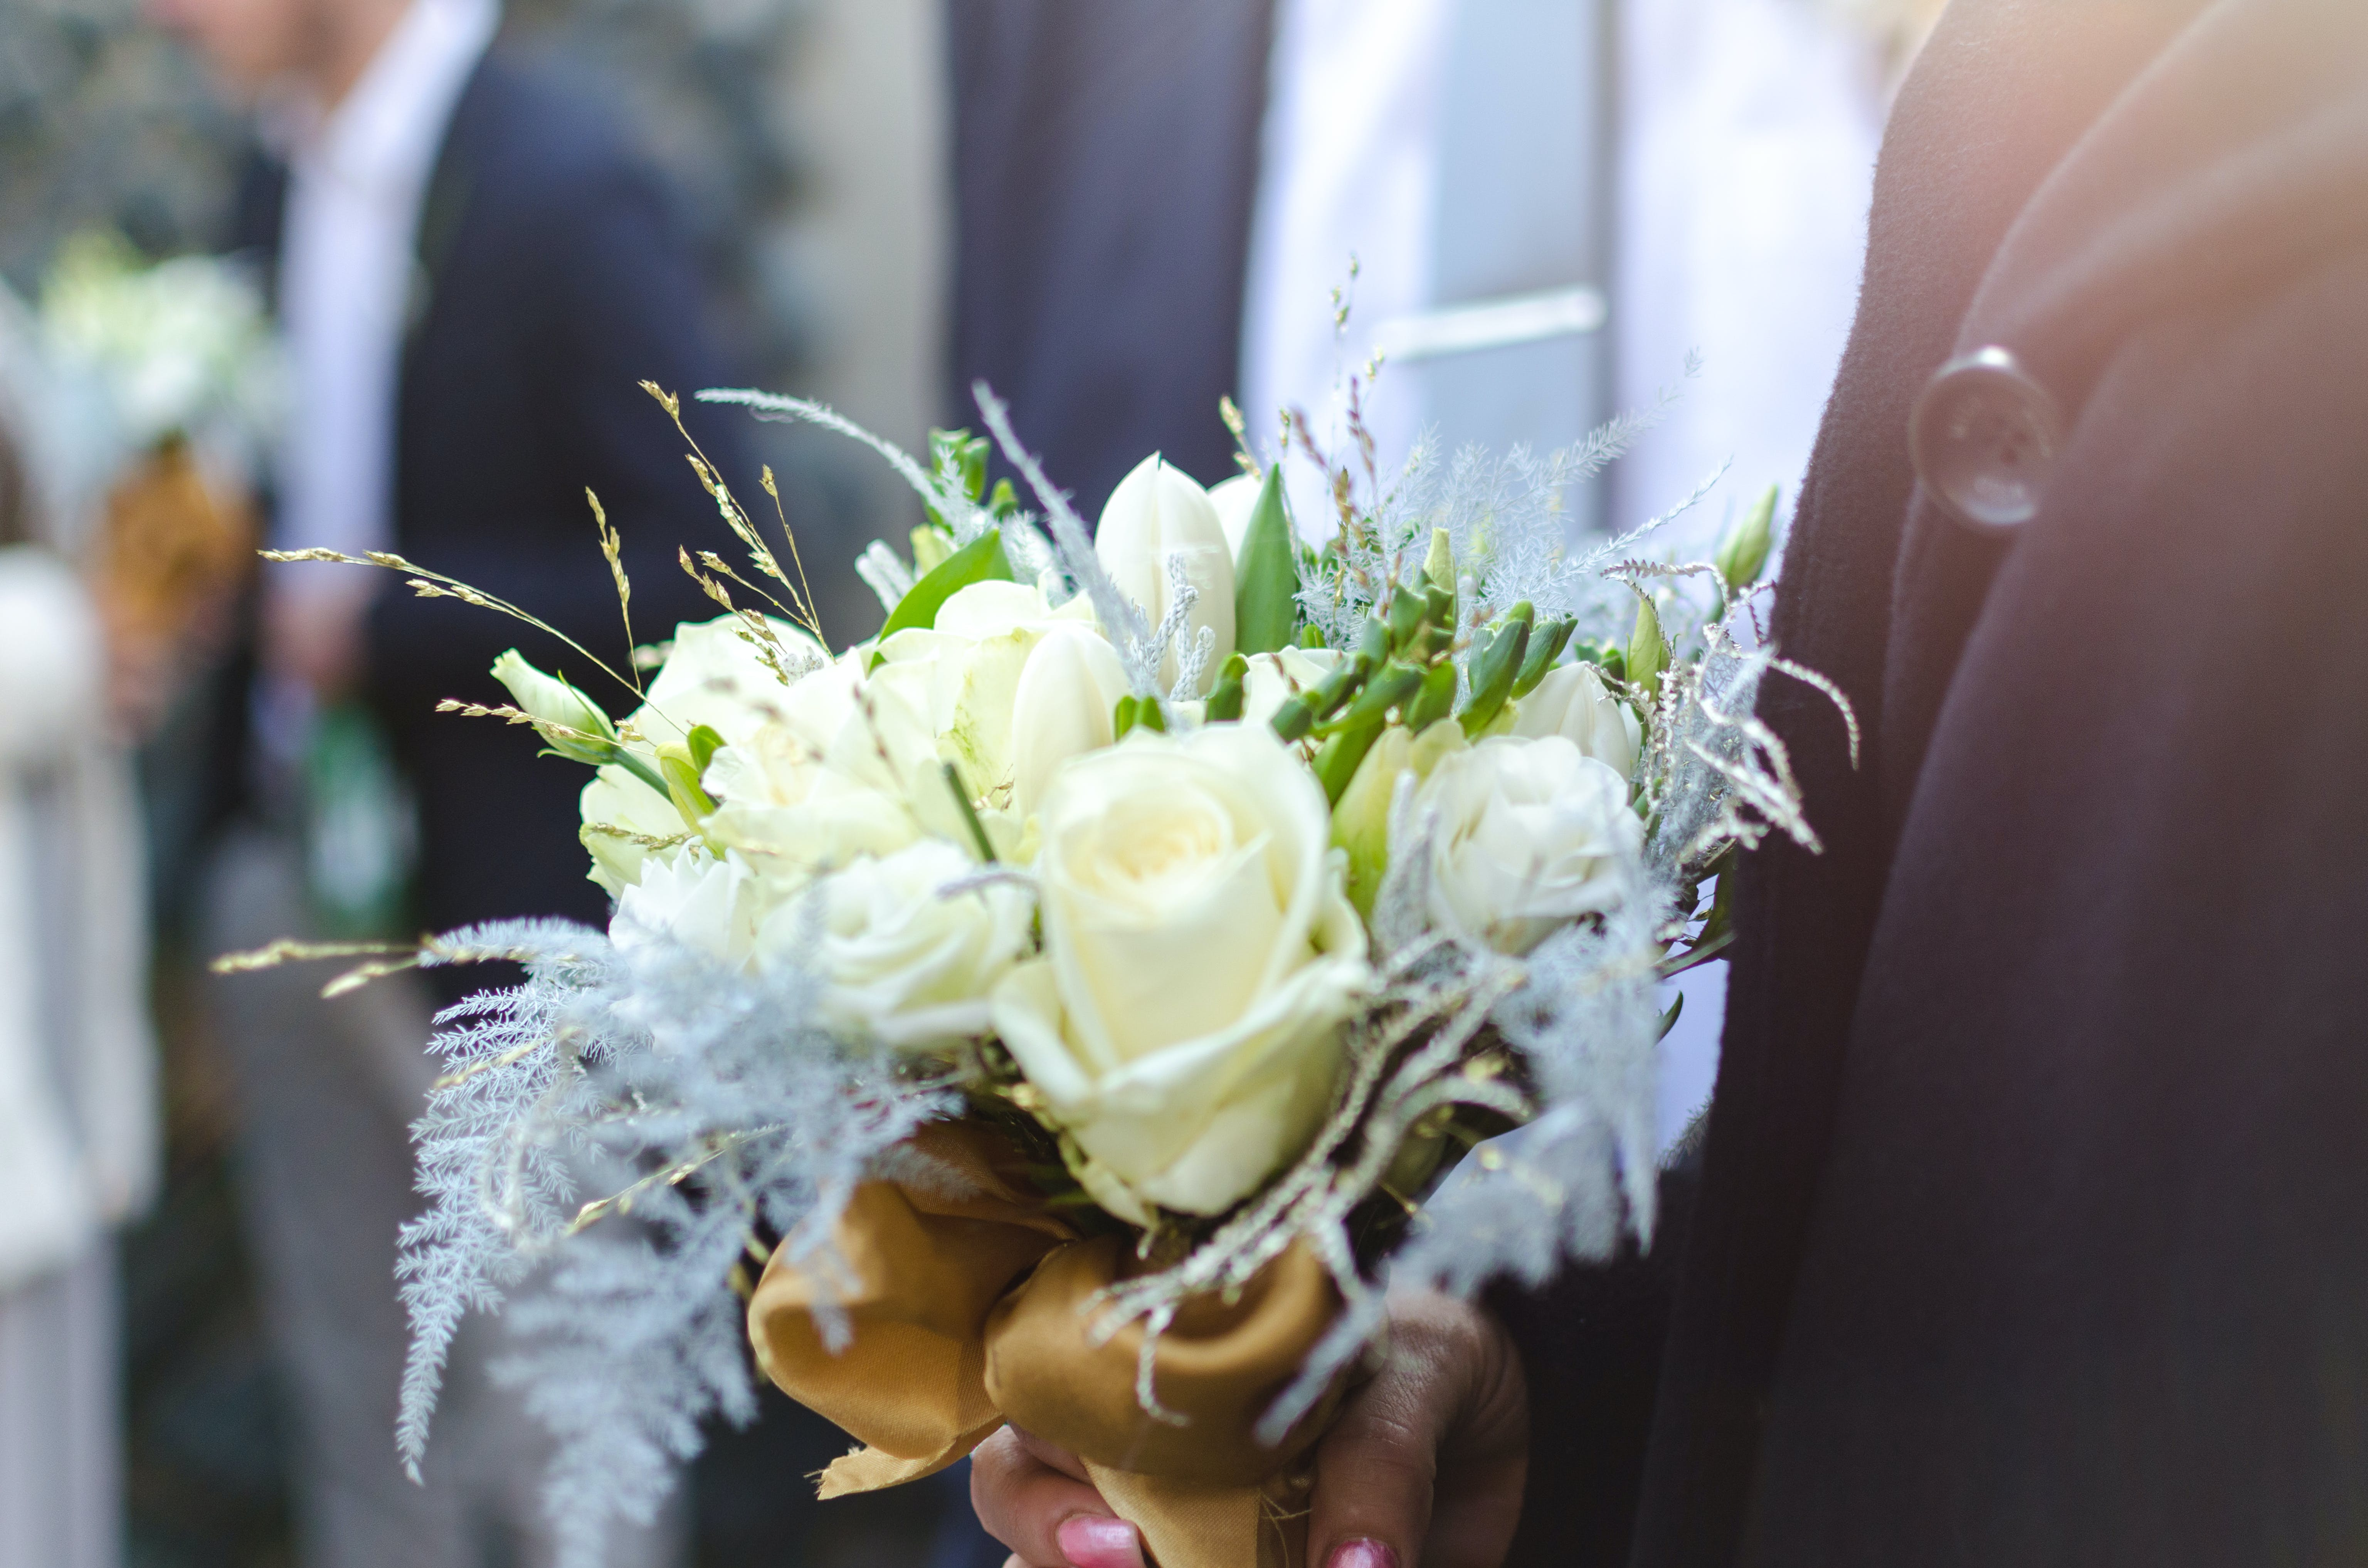 Person Holding Bouquet of White Roses